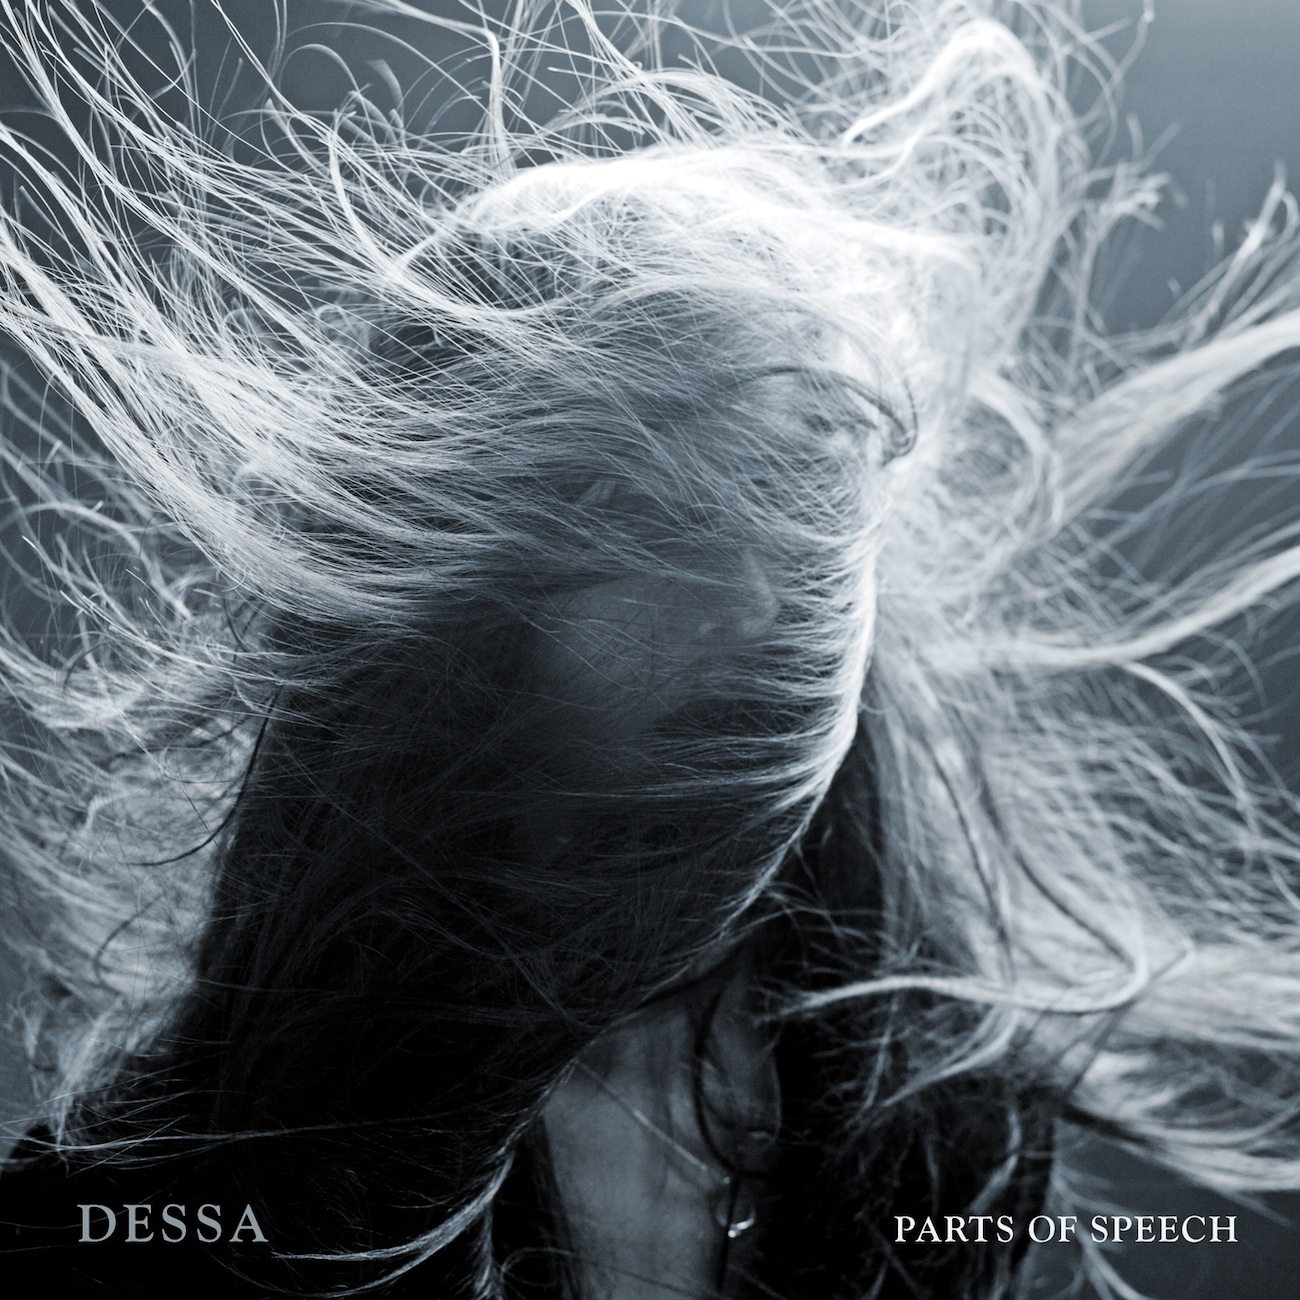 Dessa album art Parts of Speech doomtree